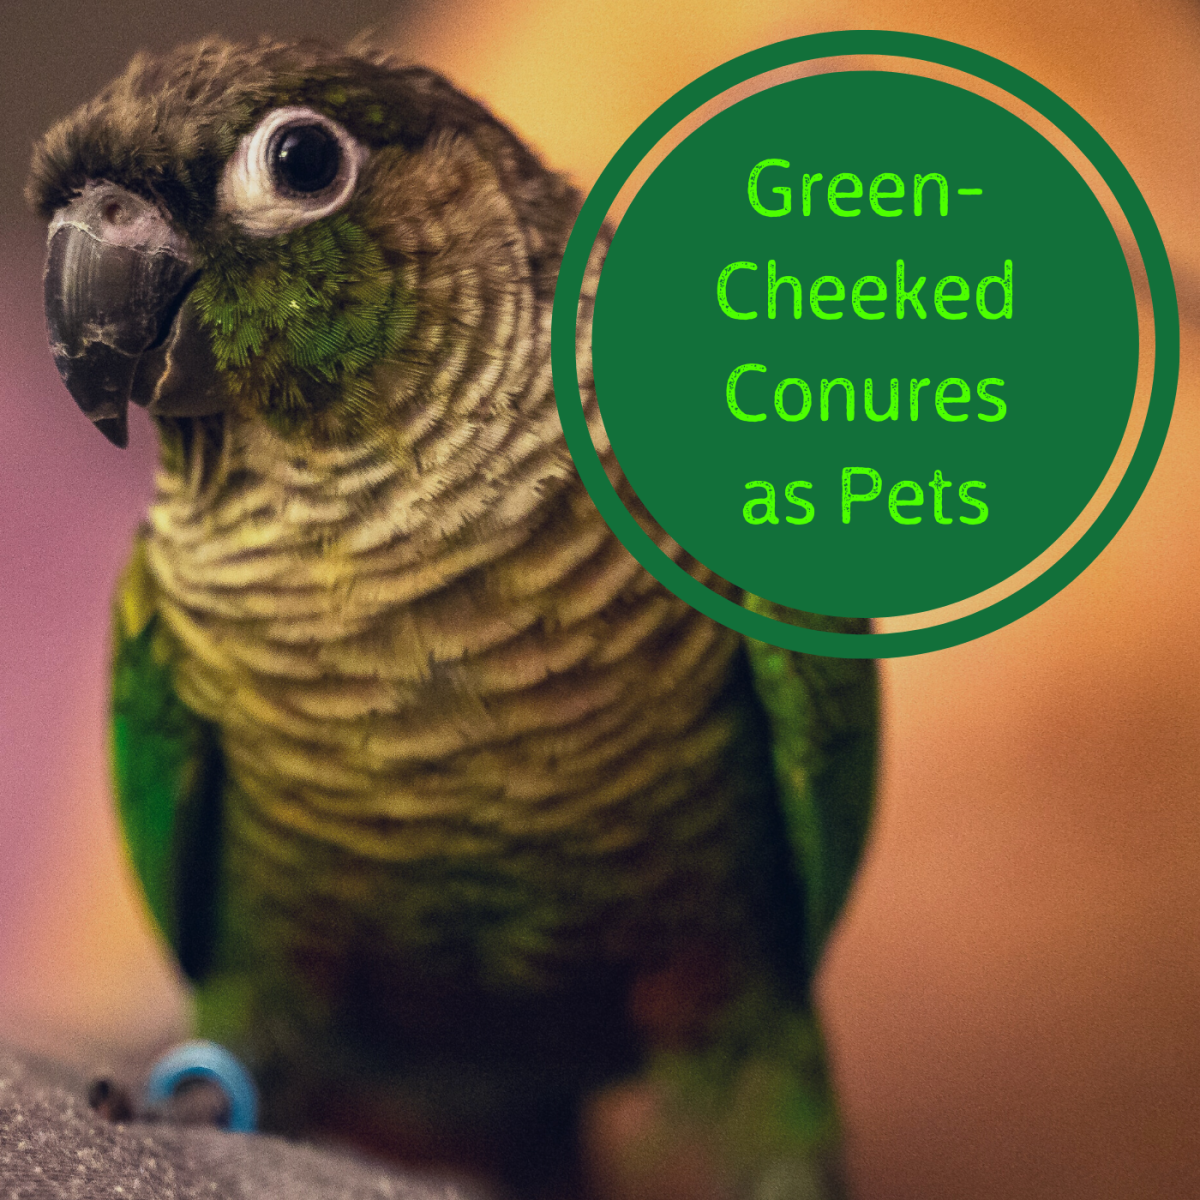 Learn what it's like to have a pet green-cheeked conure.